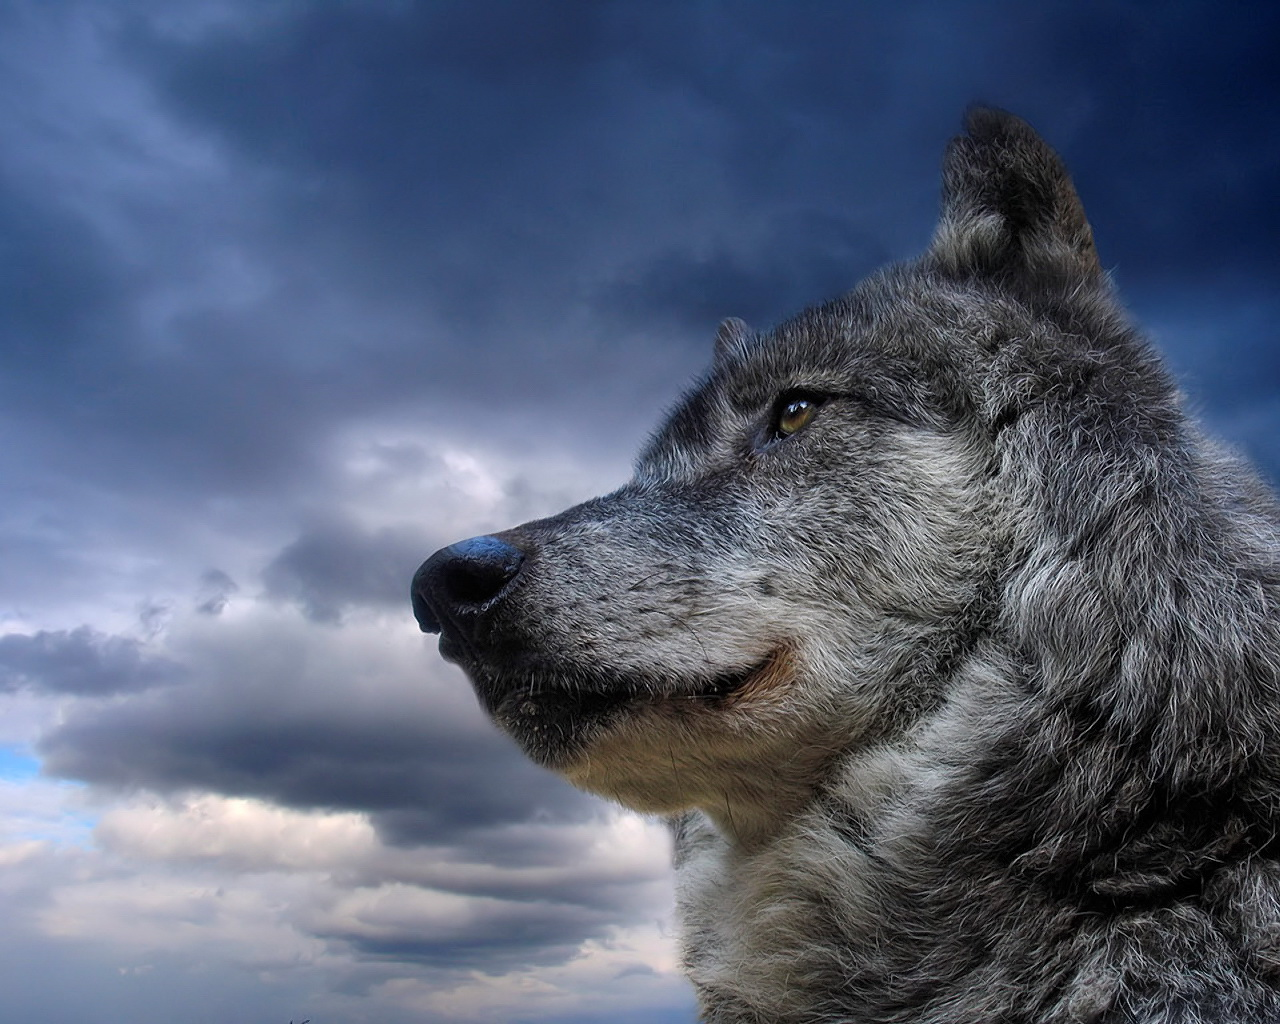 Exclusive Gray Wolf HD Wallpaper for Desktop Backgrounds 1280x1024